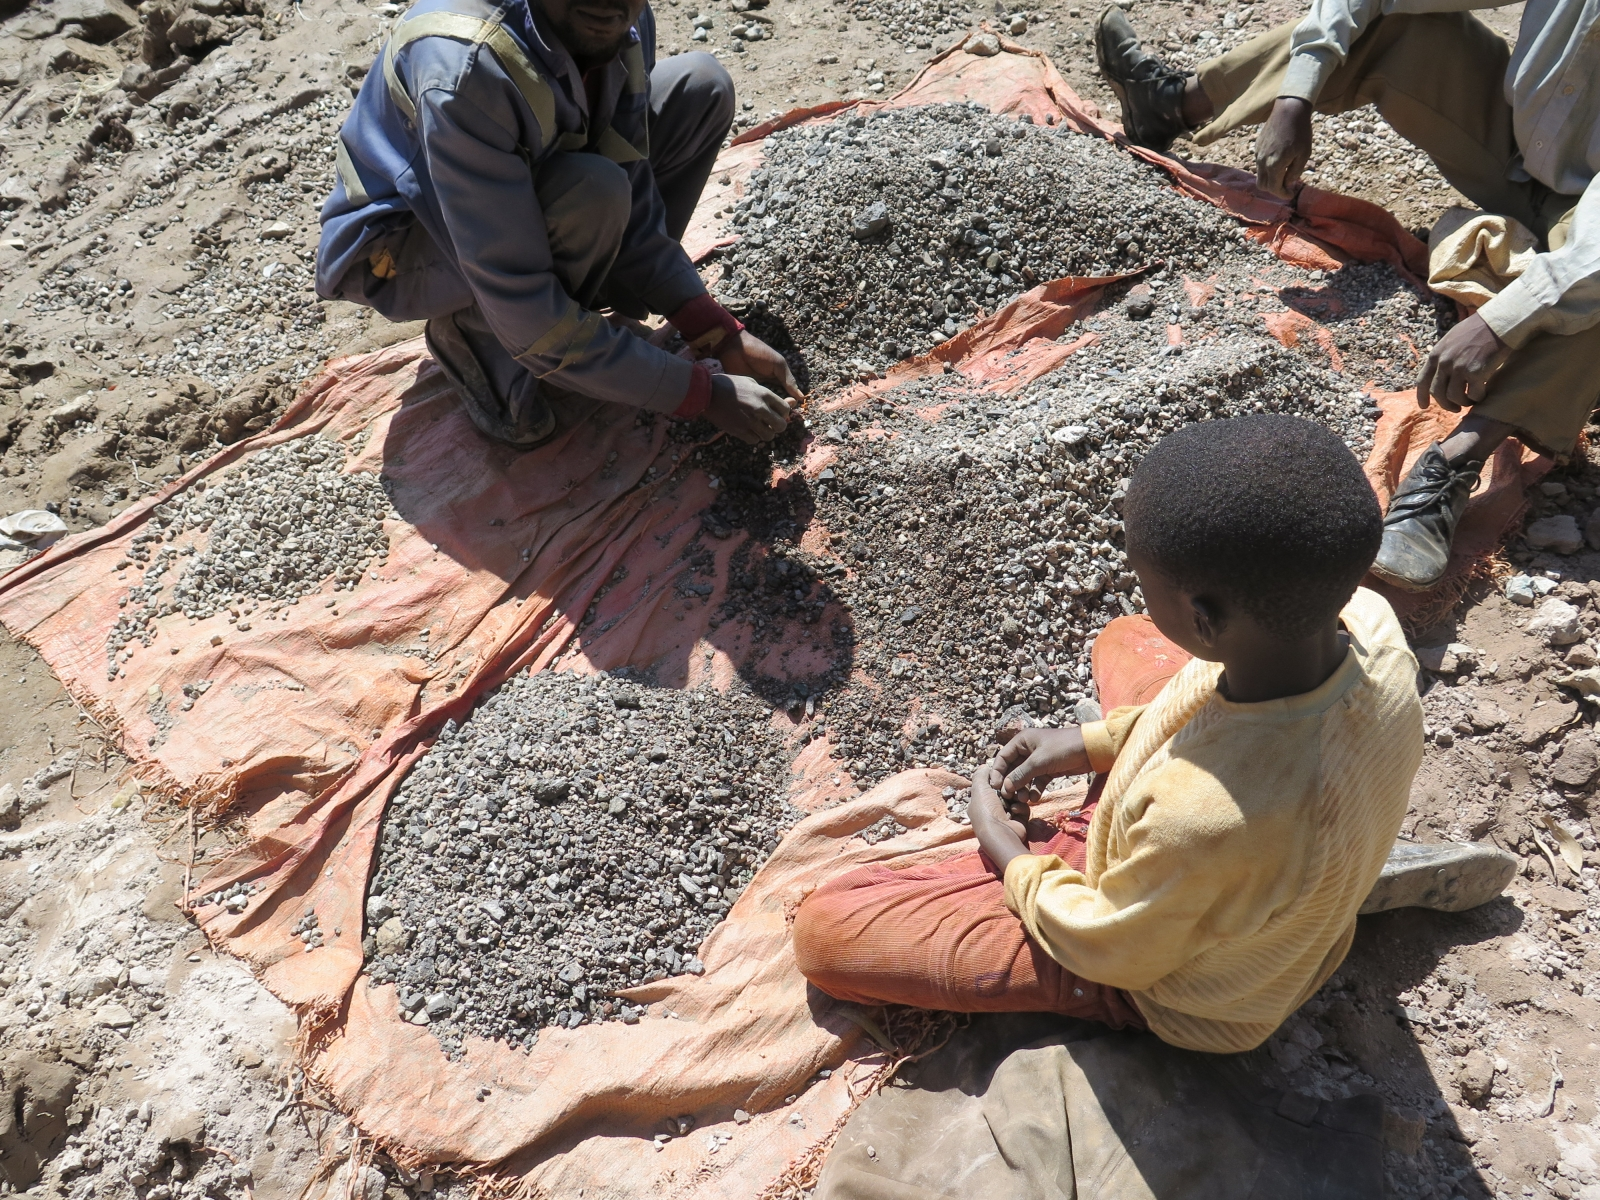 Cobalt mining by child labour in the Democratic Republic of Congo